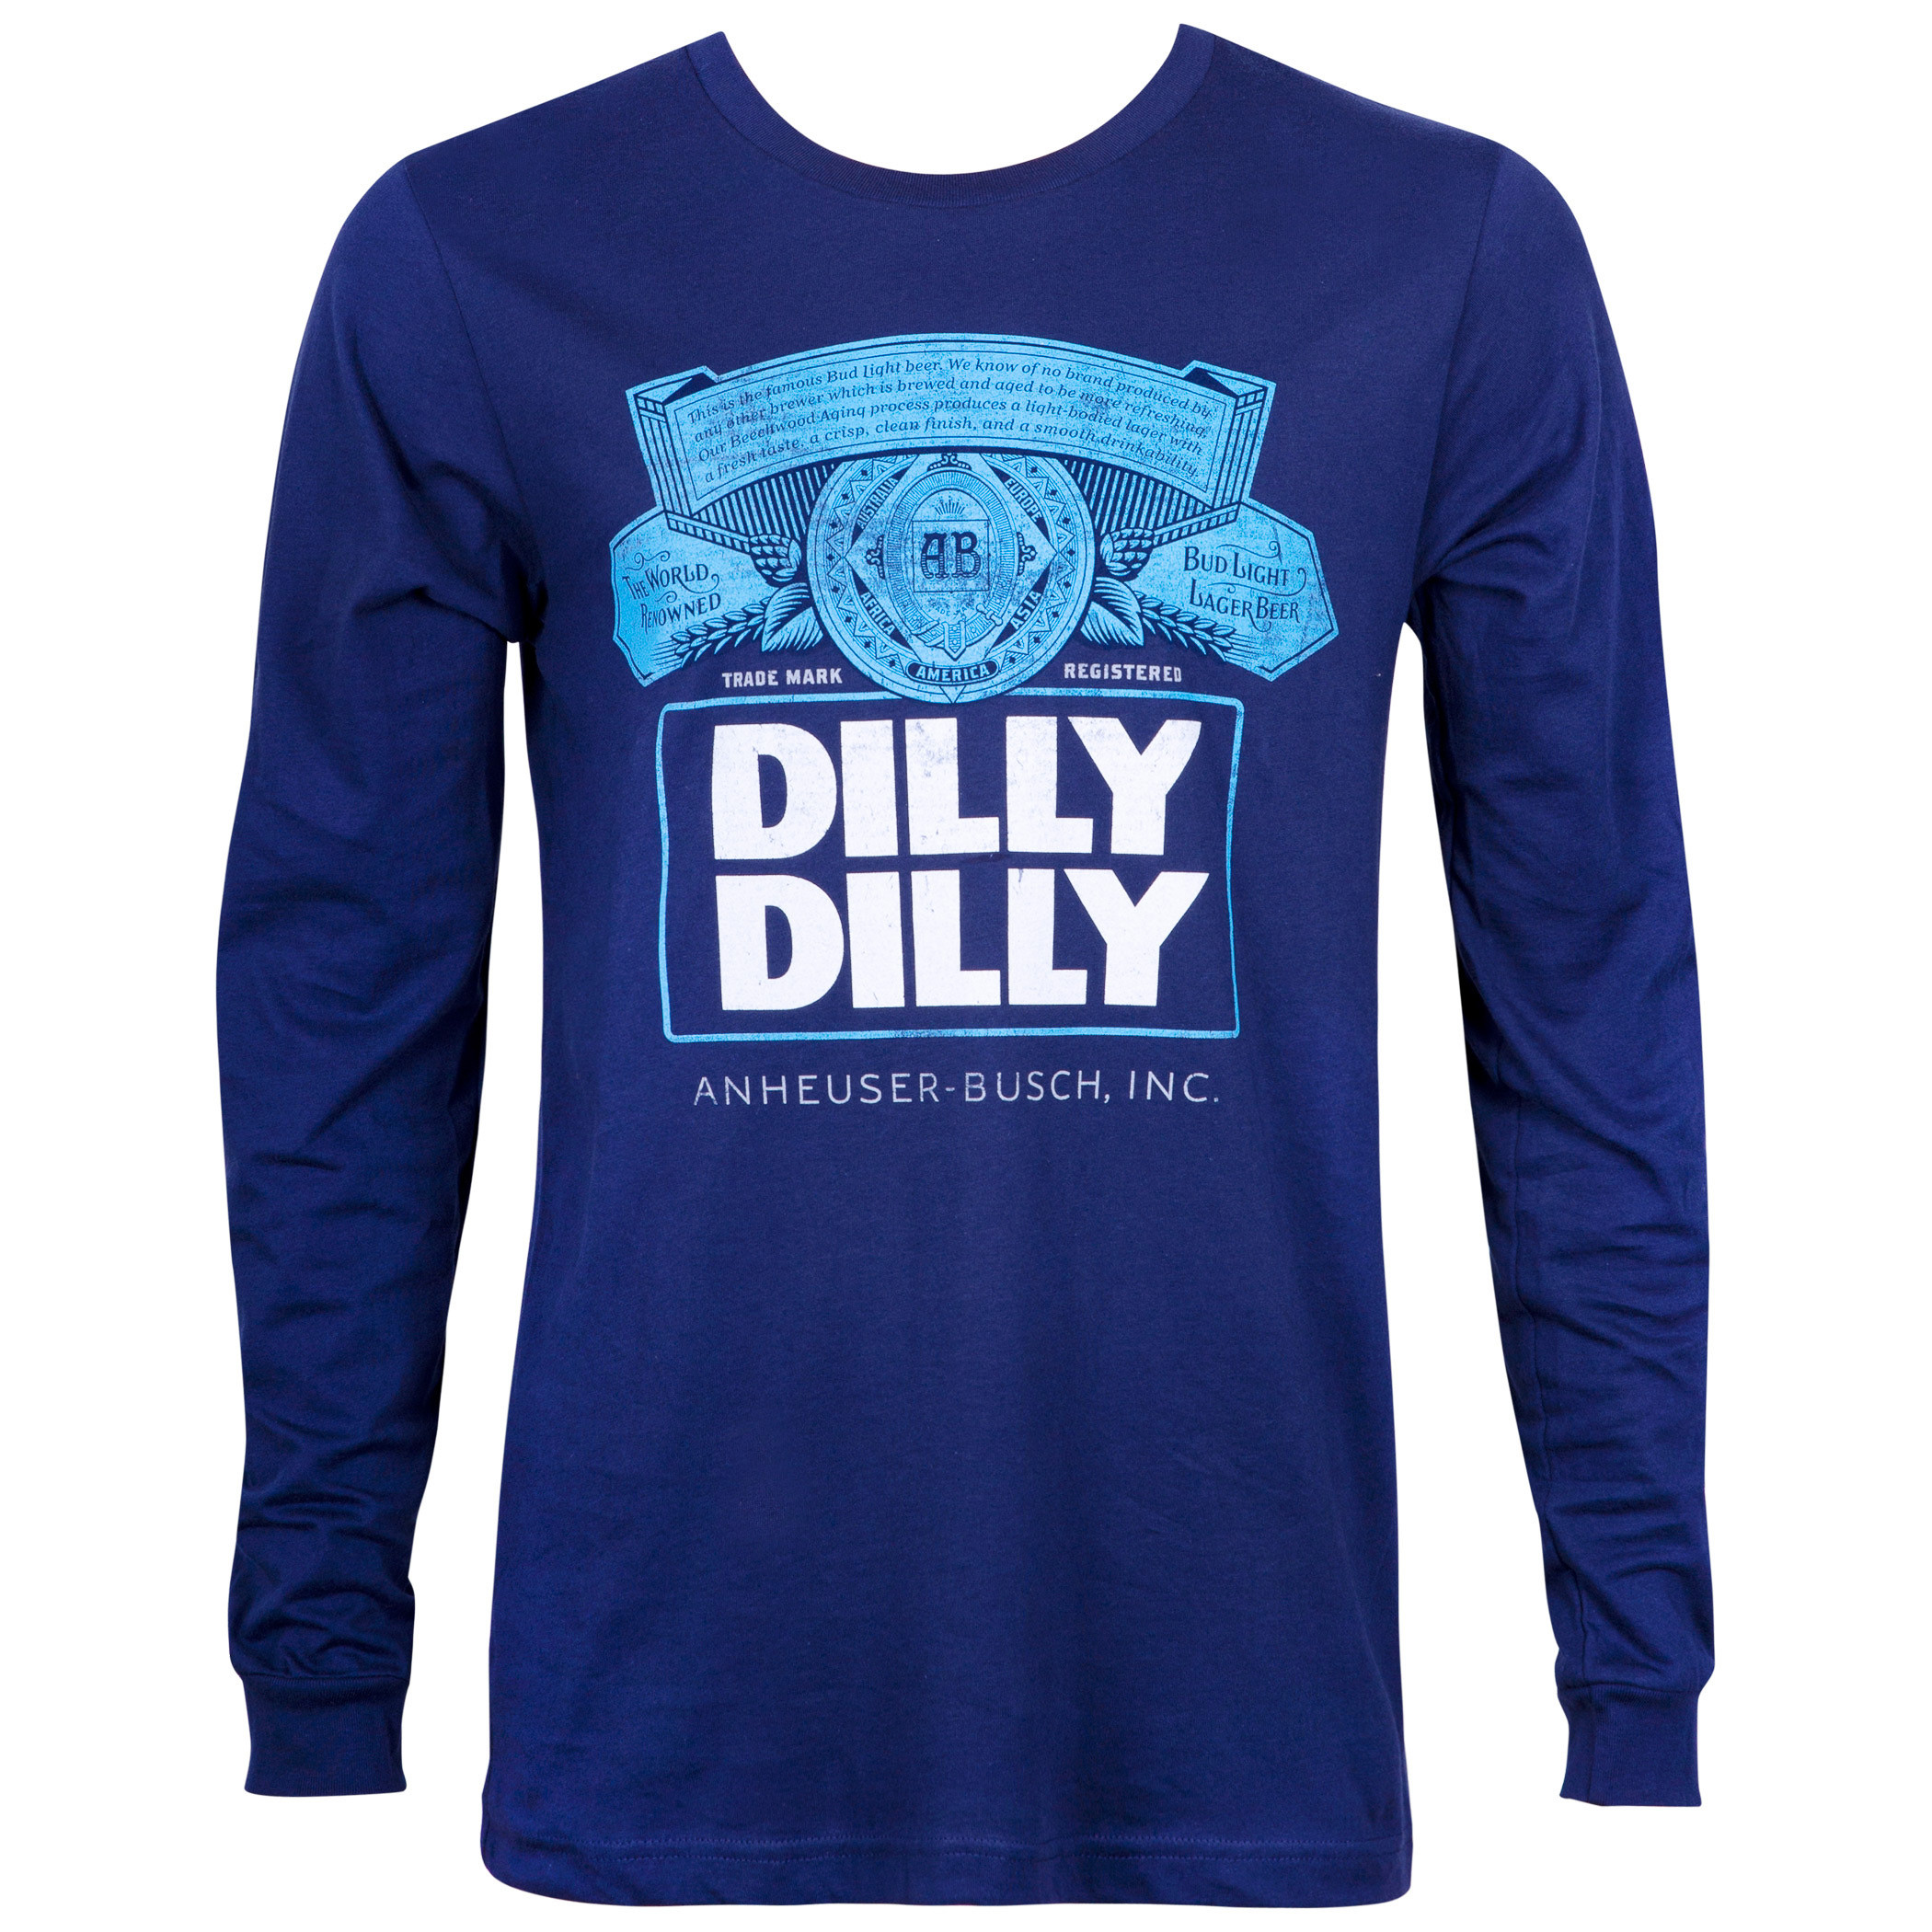 Bud Light Dilly Dilly Long Sleeve Navy Blue Shirt